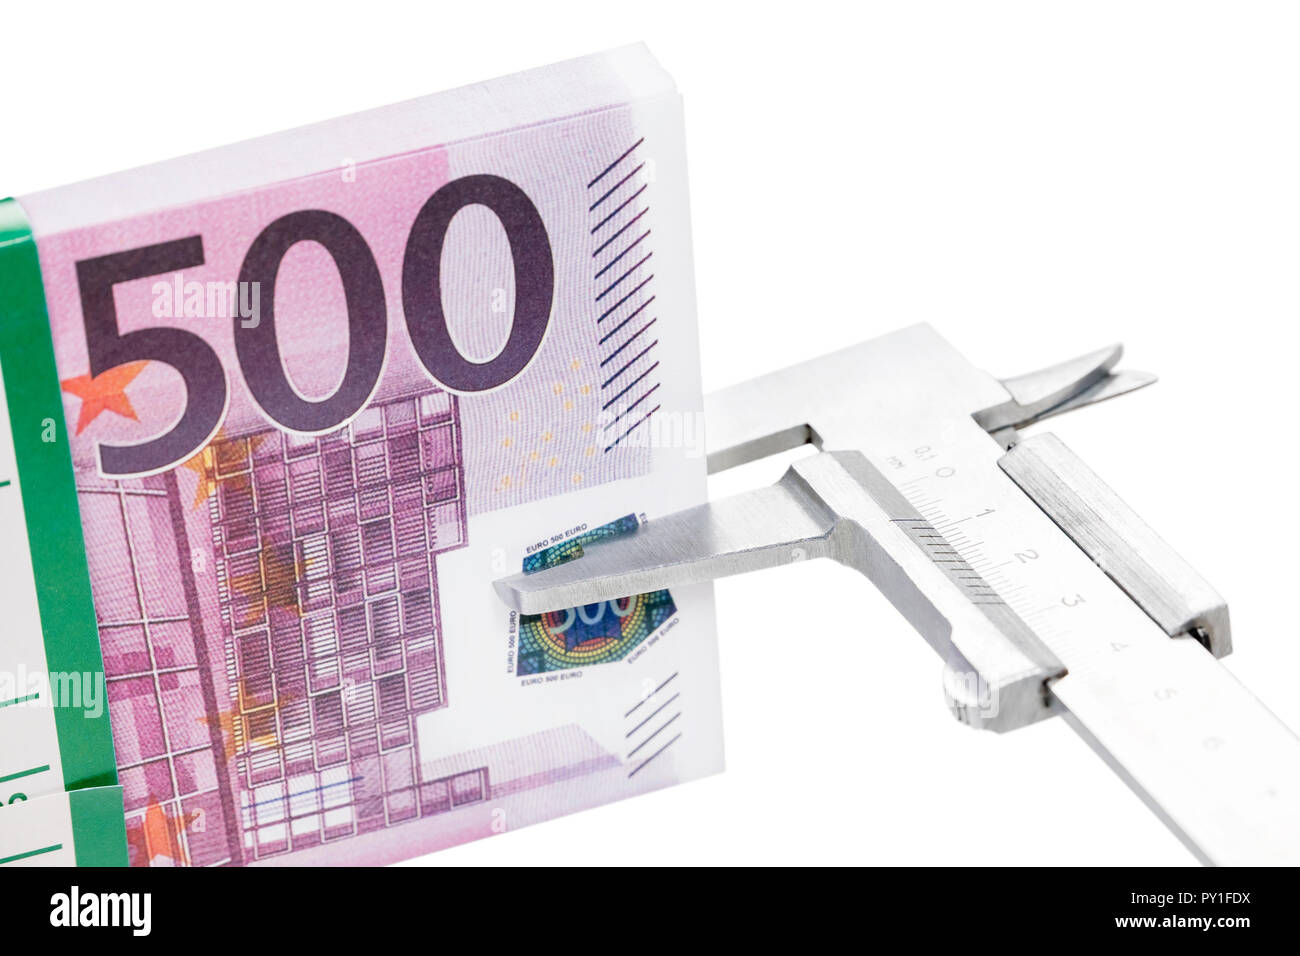 caliper measures money - Stock Image